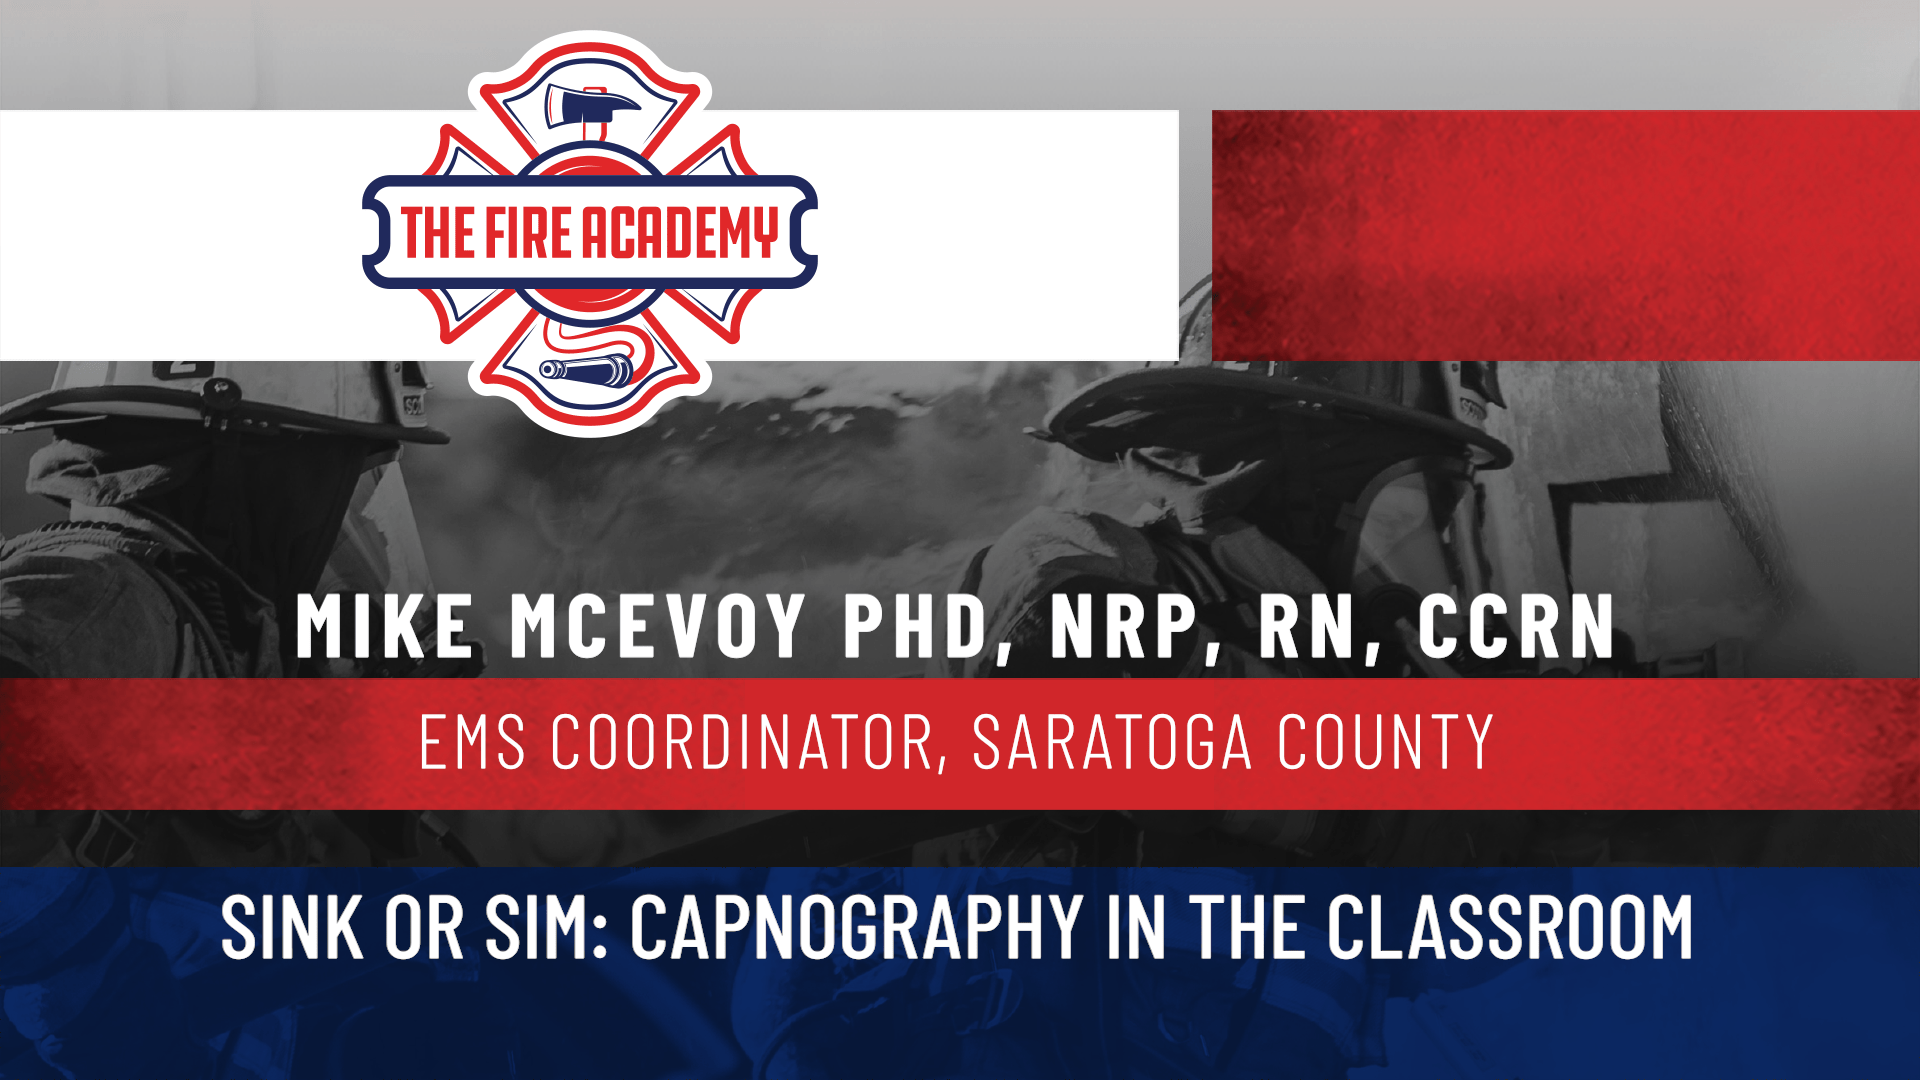 Sink or Sim: Capnography in the Classroom